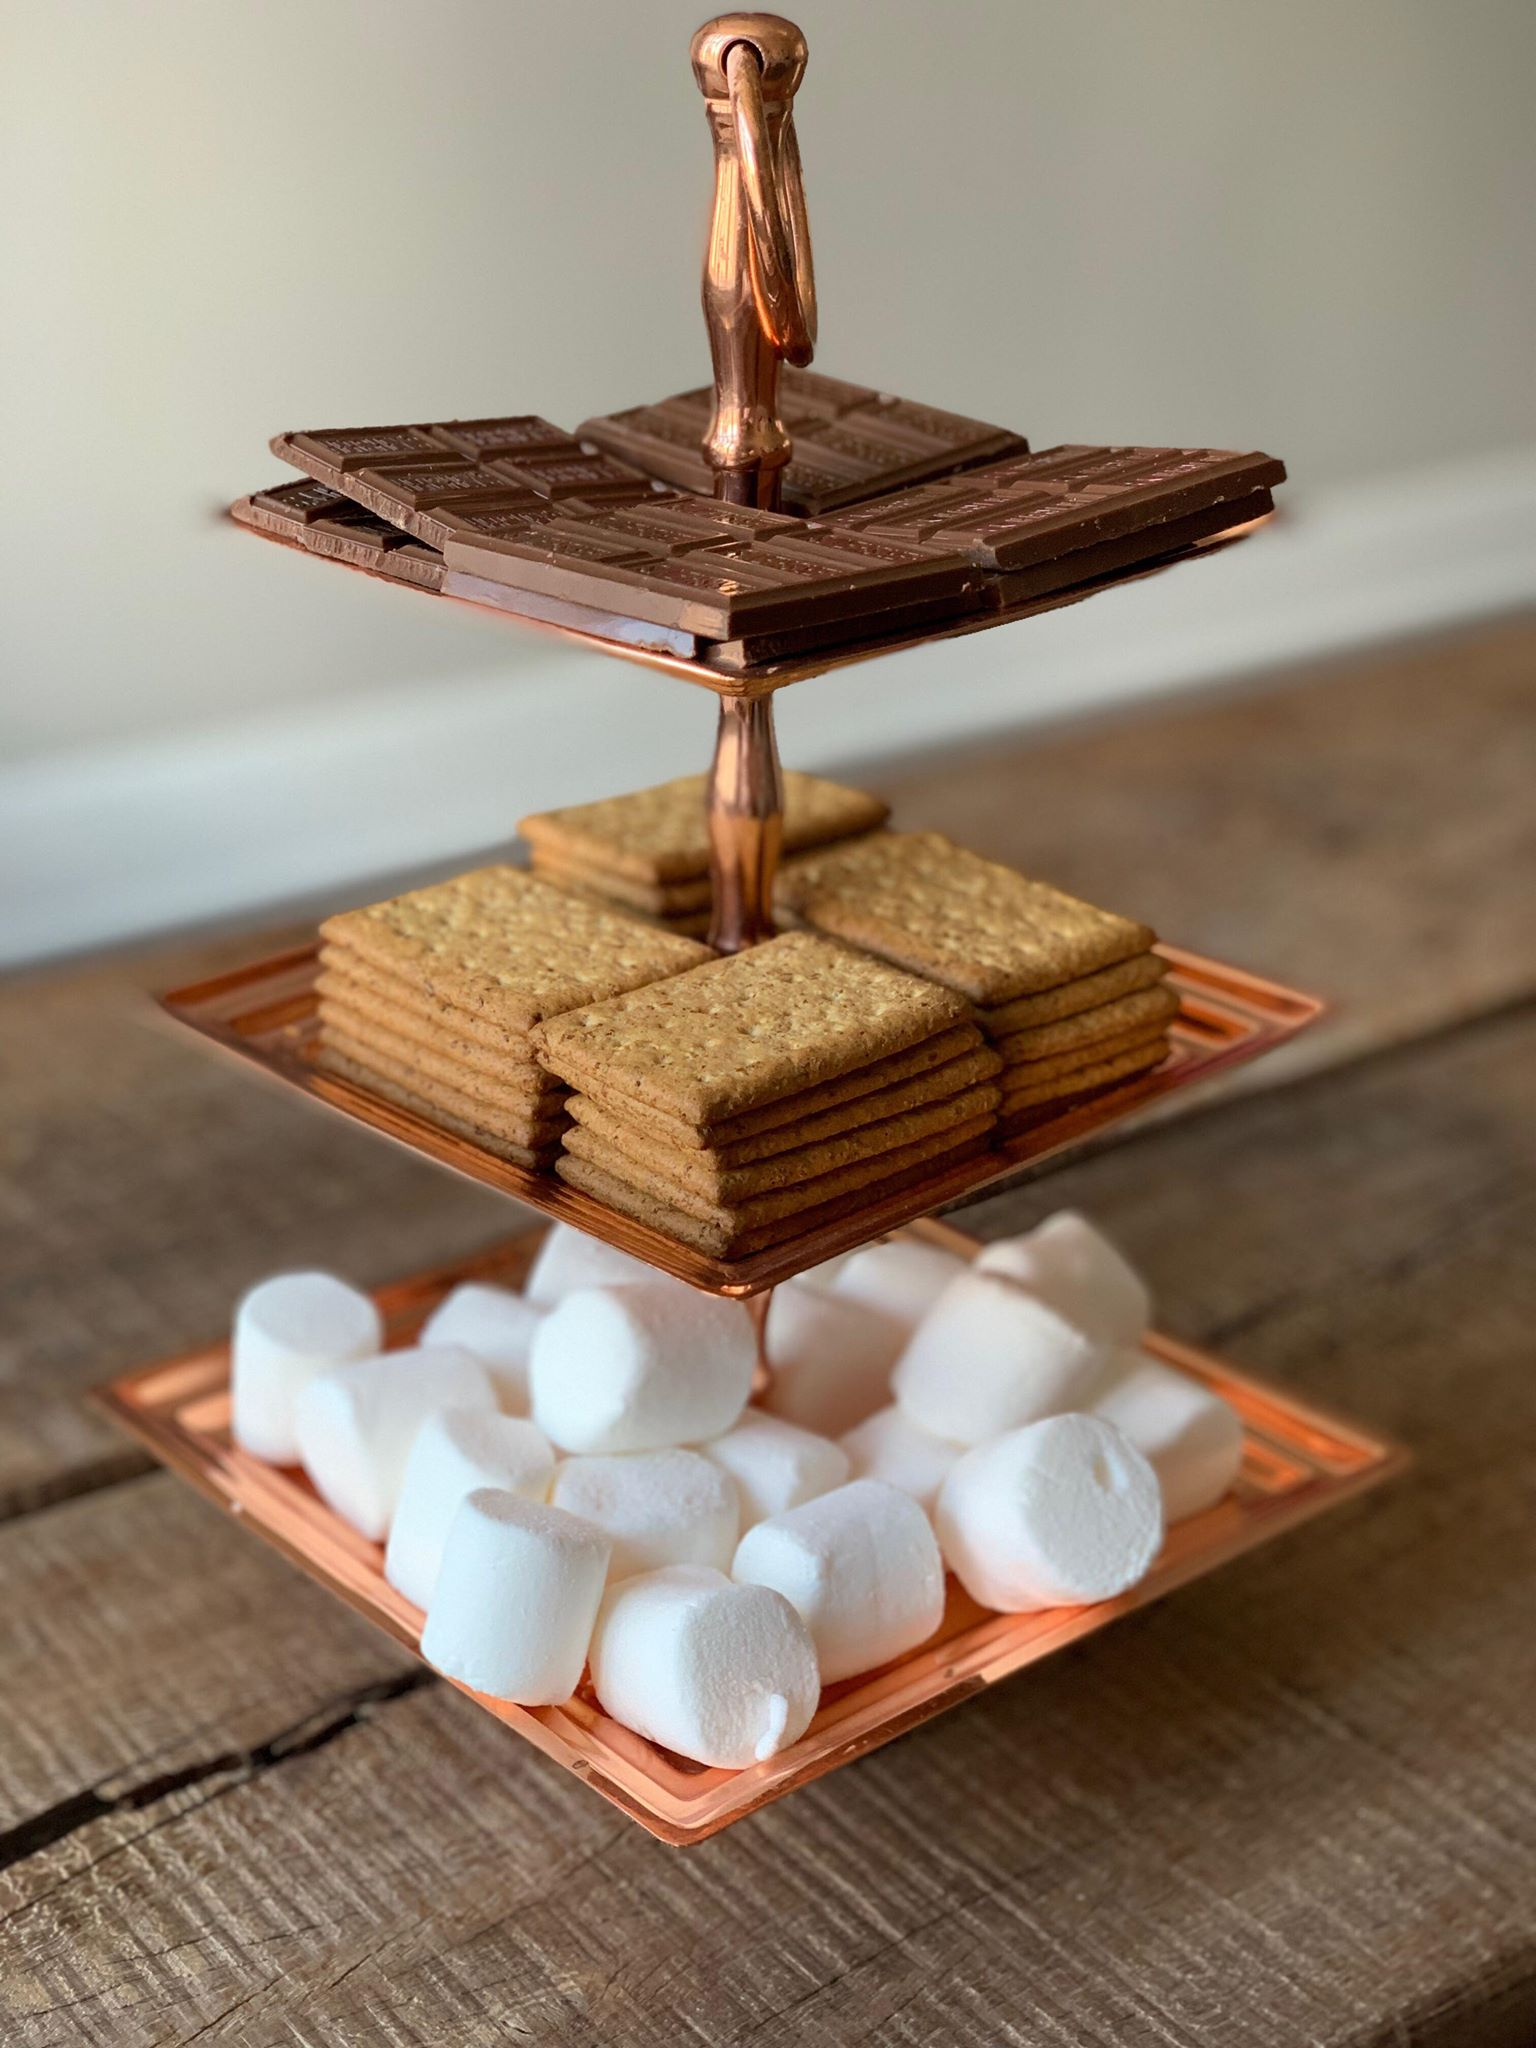 s'mores stand